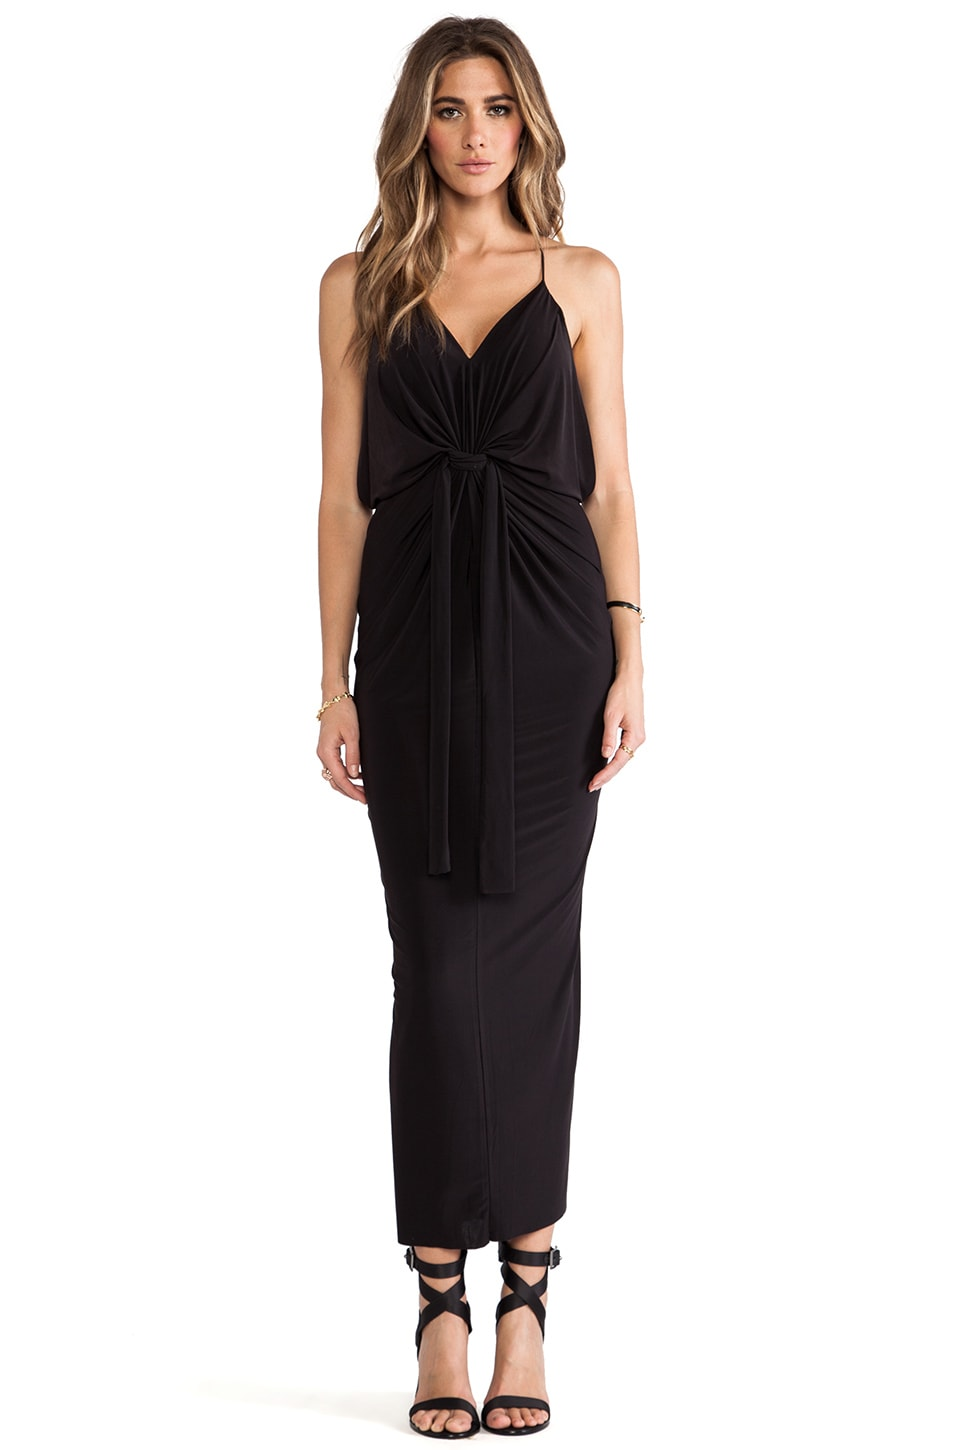 T-Bags LosAngeles Domino Tie Front Maxi Dress in Black